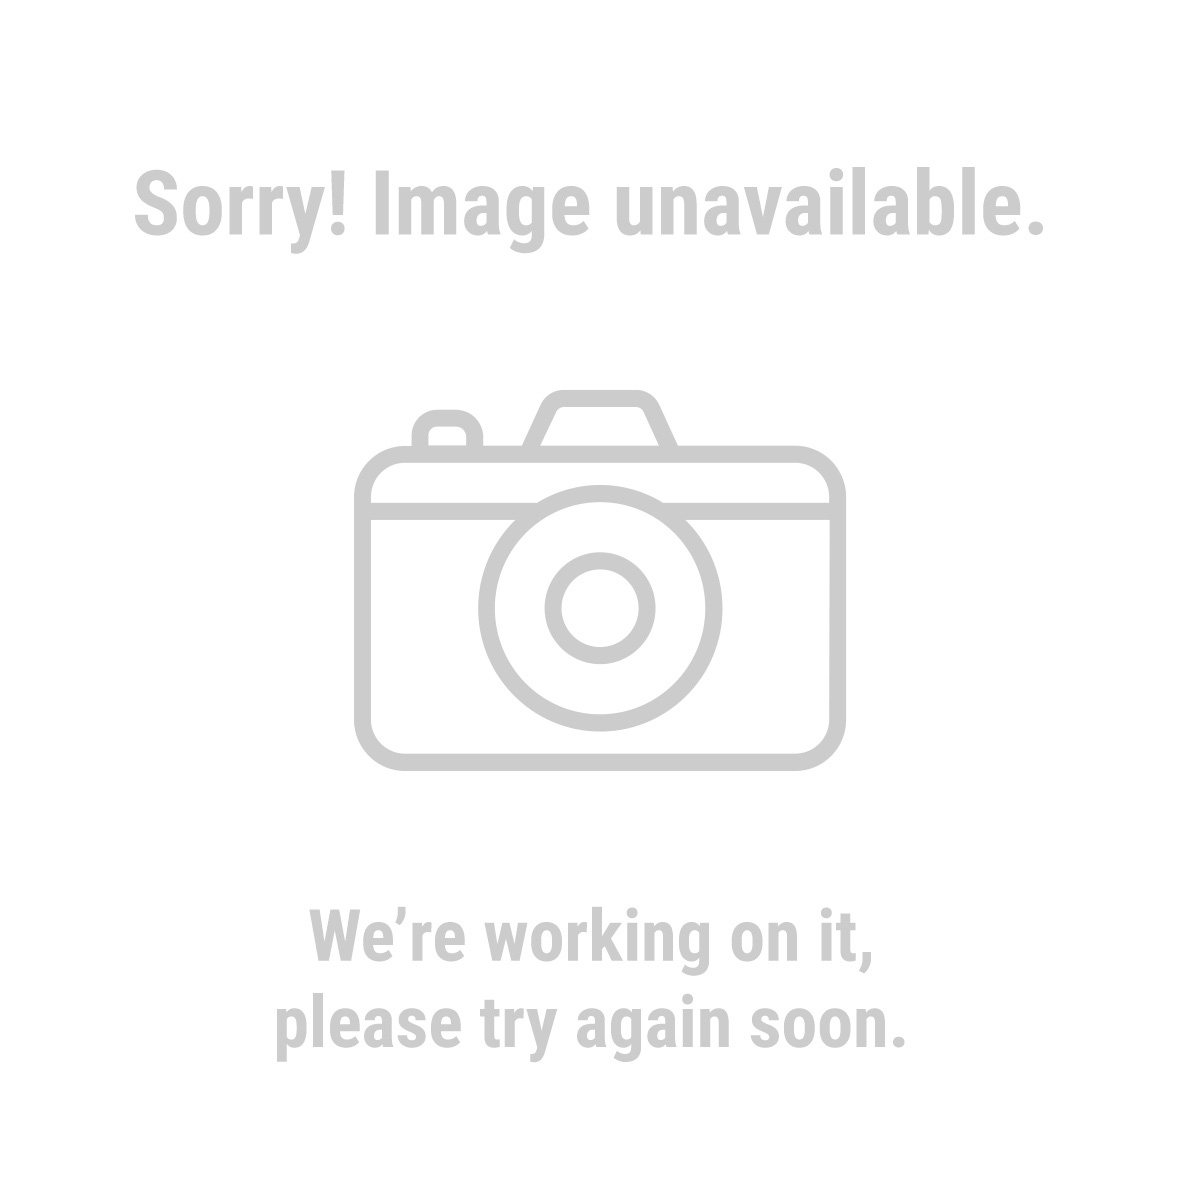 Pittsburgh 67802 Ultrasonic Distance Meter with Laser Pointer